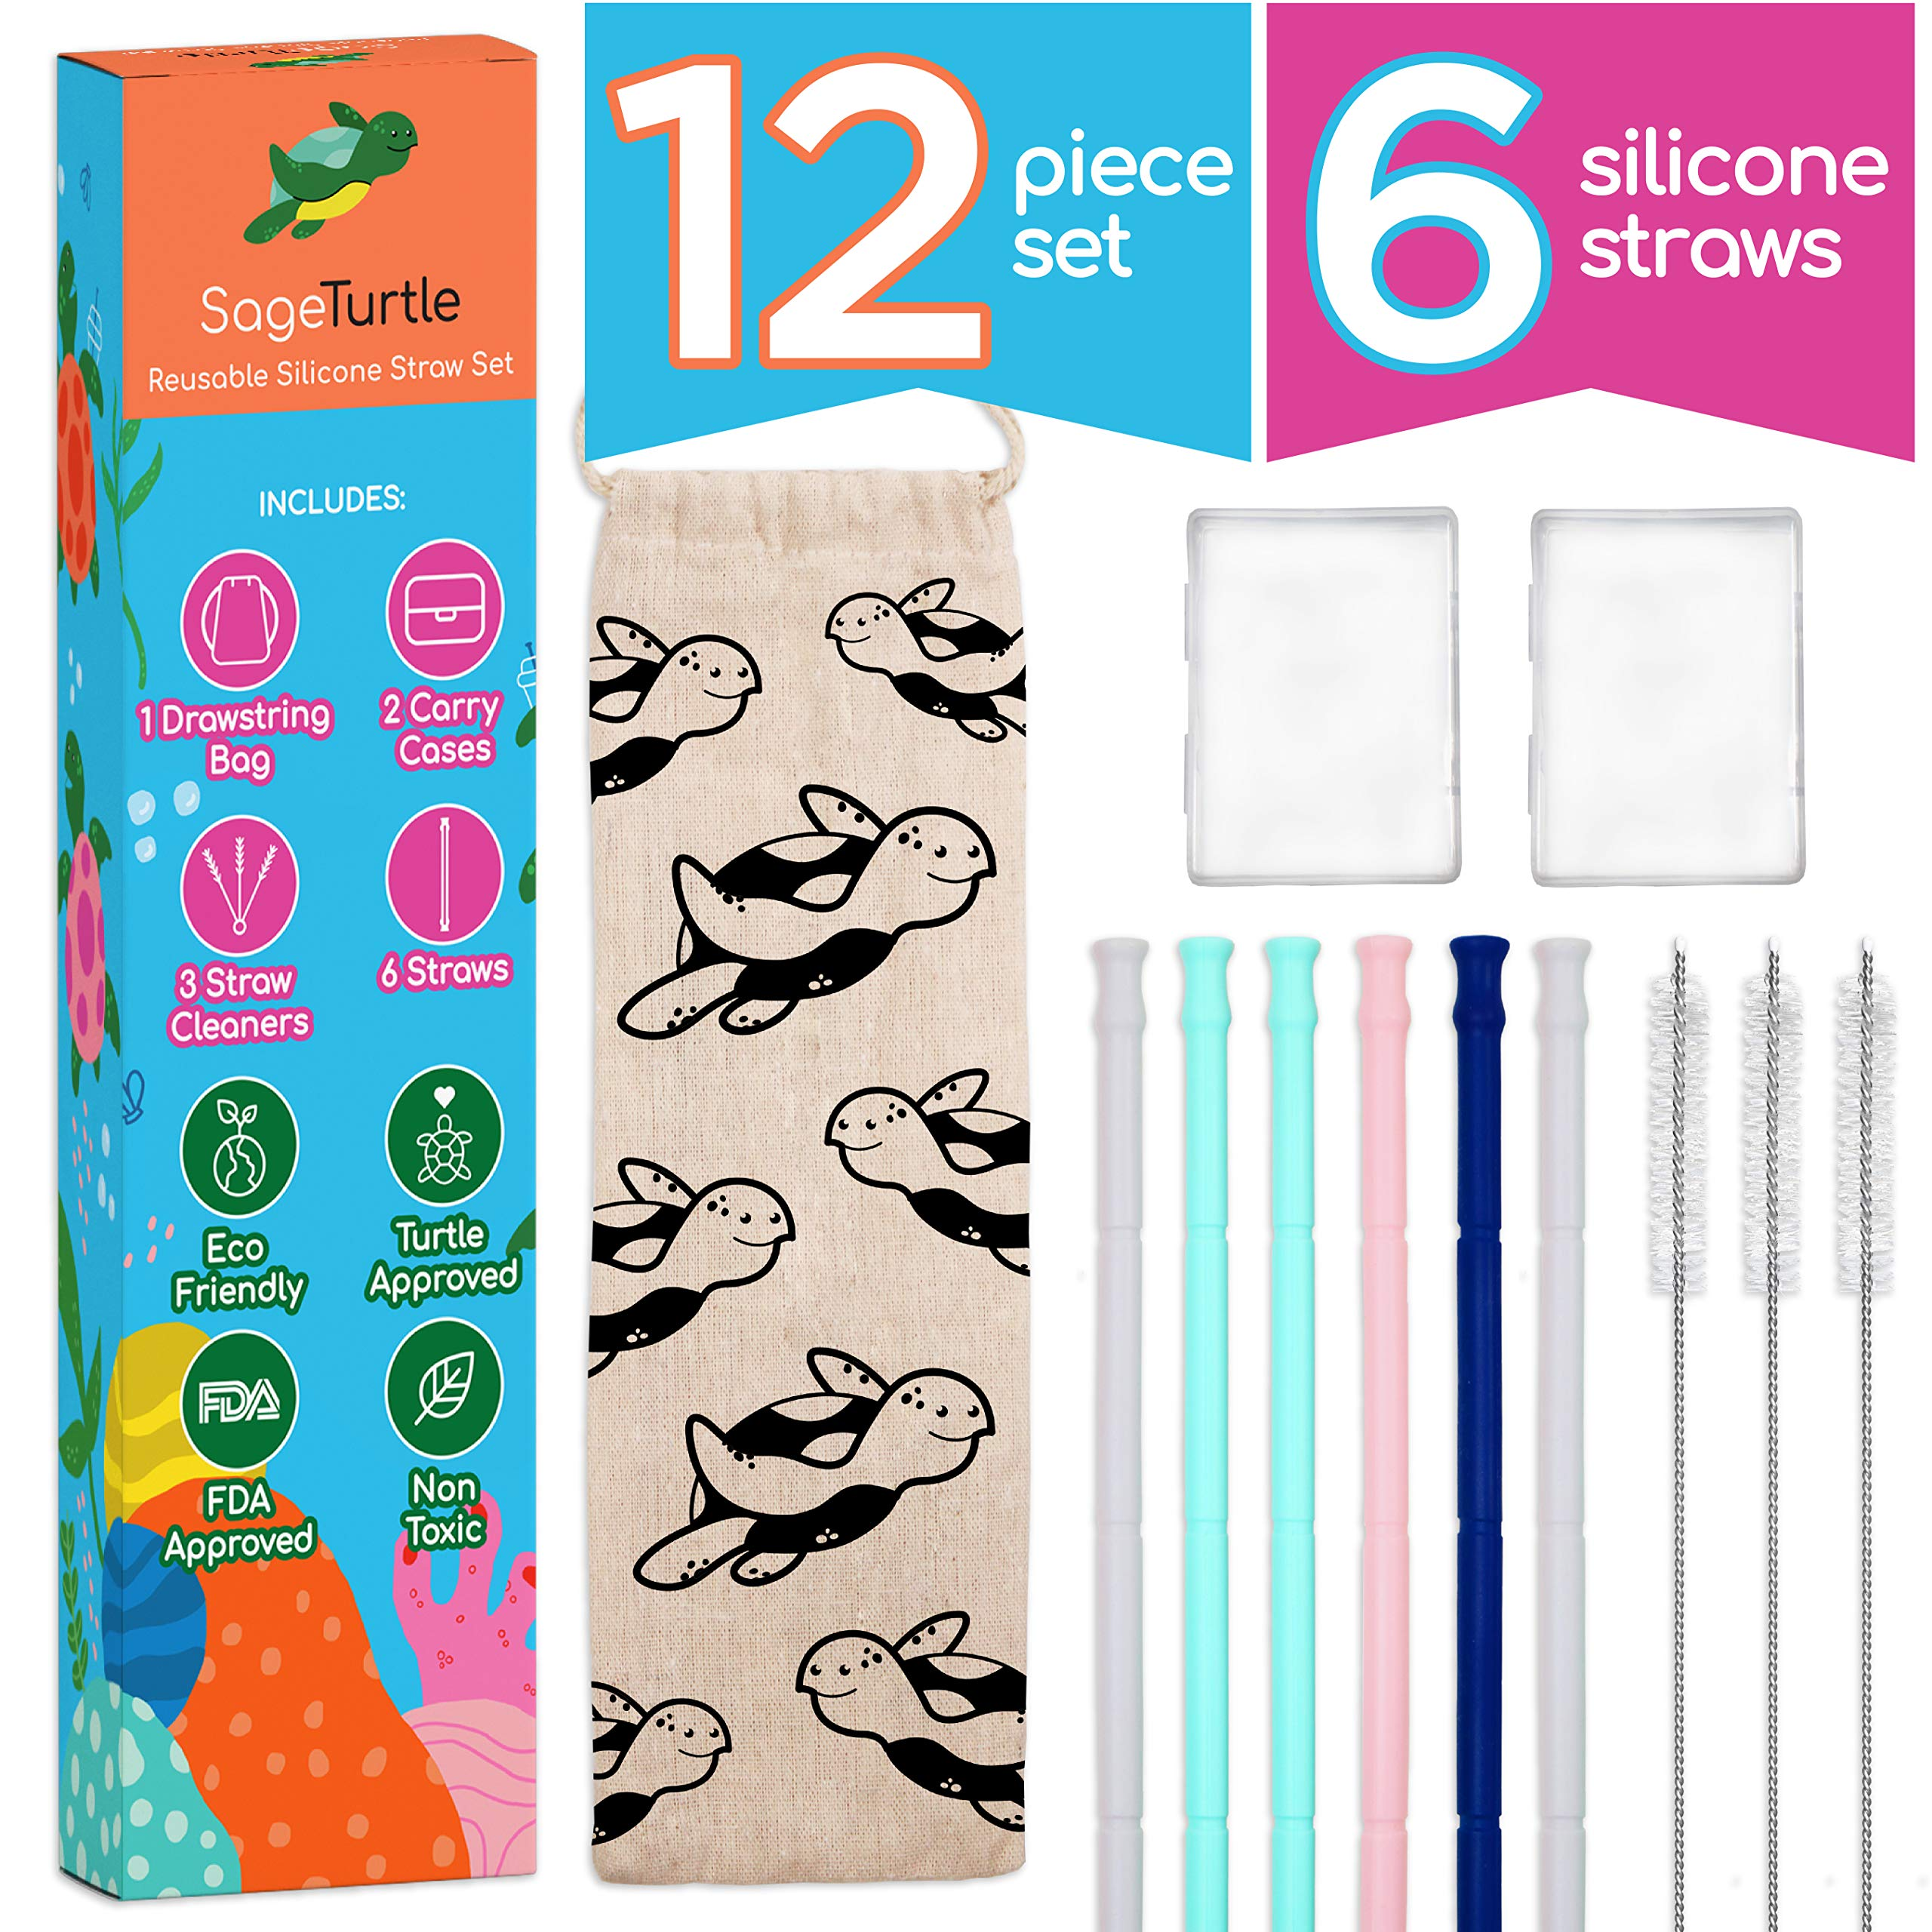 SageTurtle Silicone Straw - 12 Pc Set - Collapsible Straw - Reusable Straw with Case - Portable Straw - Foldable Straw - Reusable Straws Collapsible - Collapsible Straws - Reusable Straws With Case by SageTurtle